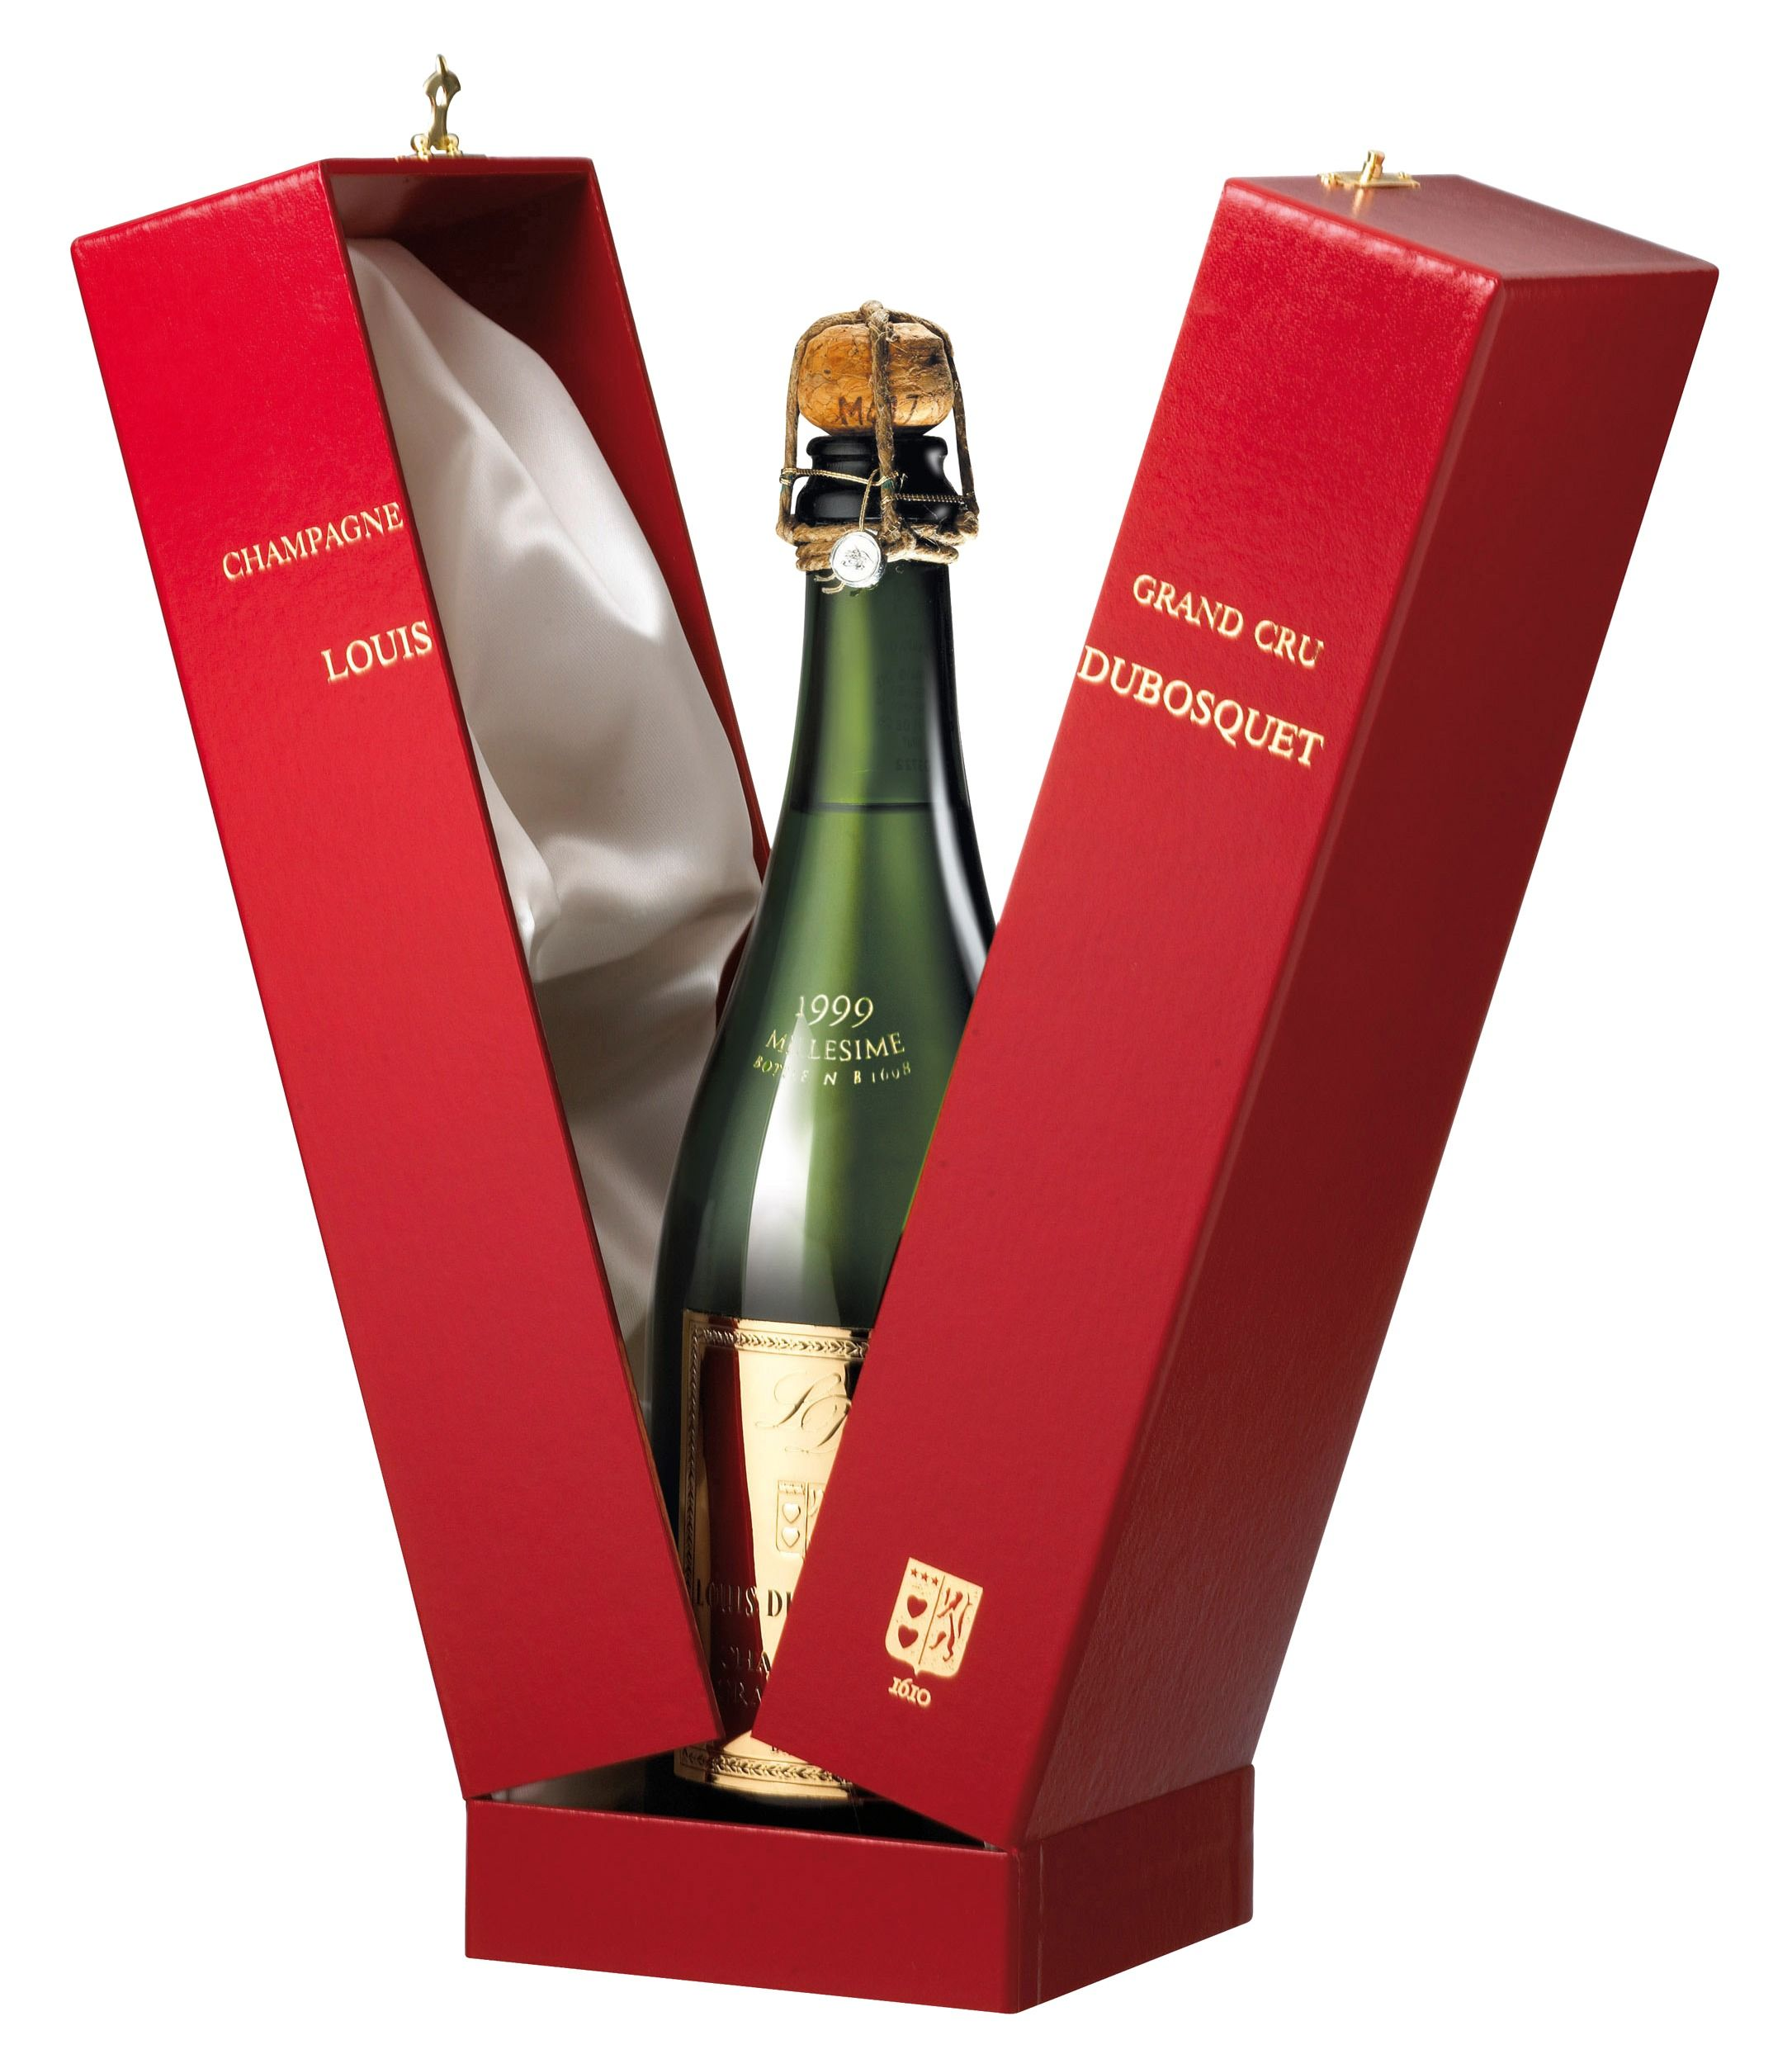 Champagne Louis Dubosquet 100 Grand Cru With Gift Box Only The Great Vintages Are Put Aside And Millisi Bottle Packaging Beverage Packaging Wine Advertising